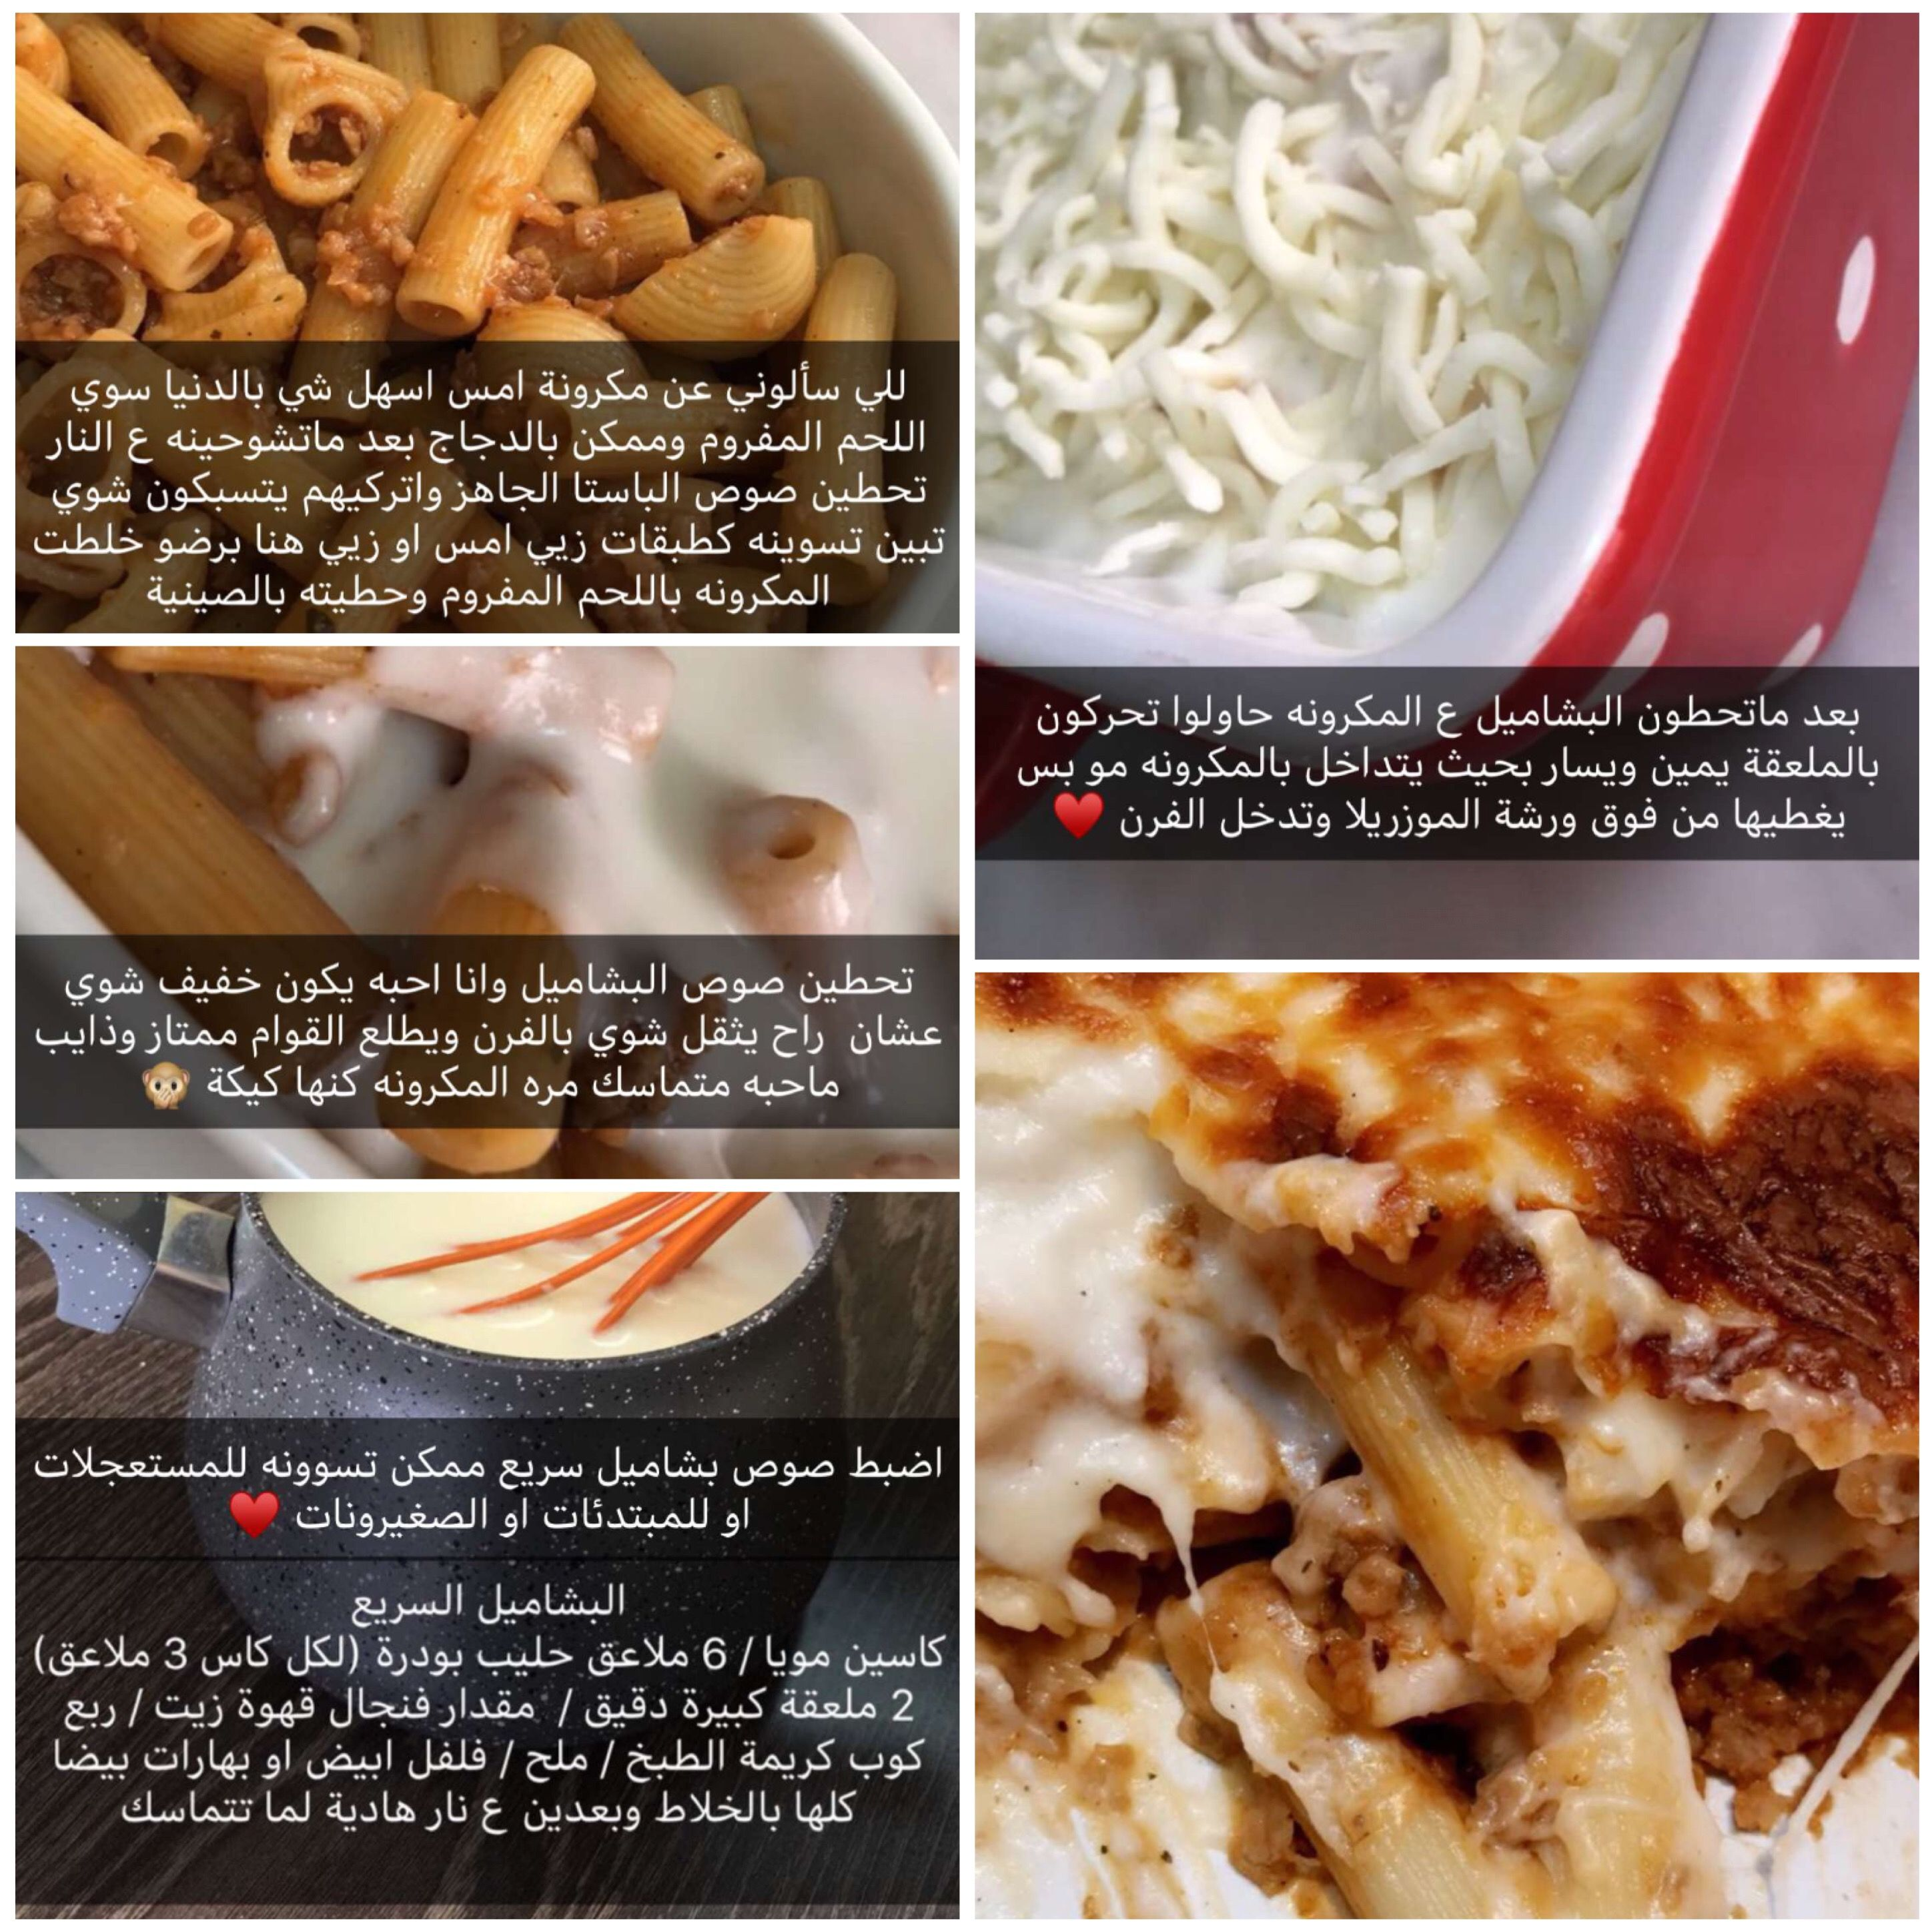 Pin By Raghd Ahmed On طبخ Cooking Food And Drink Food